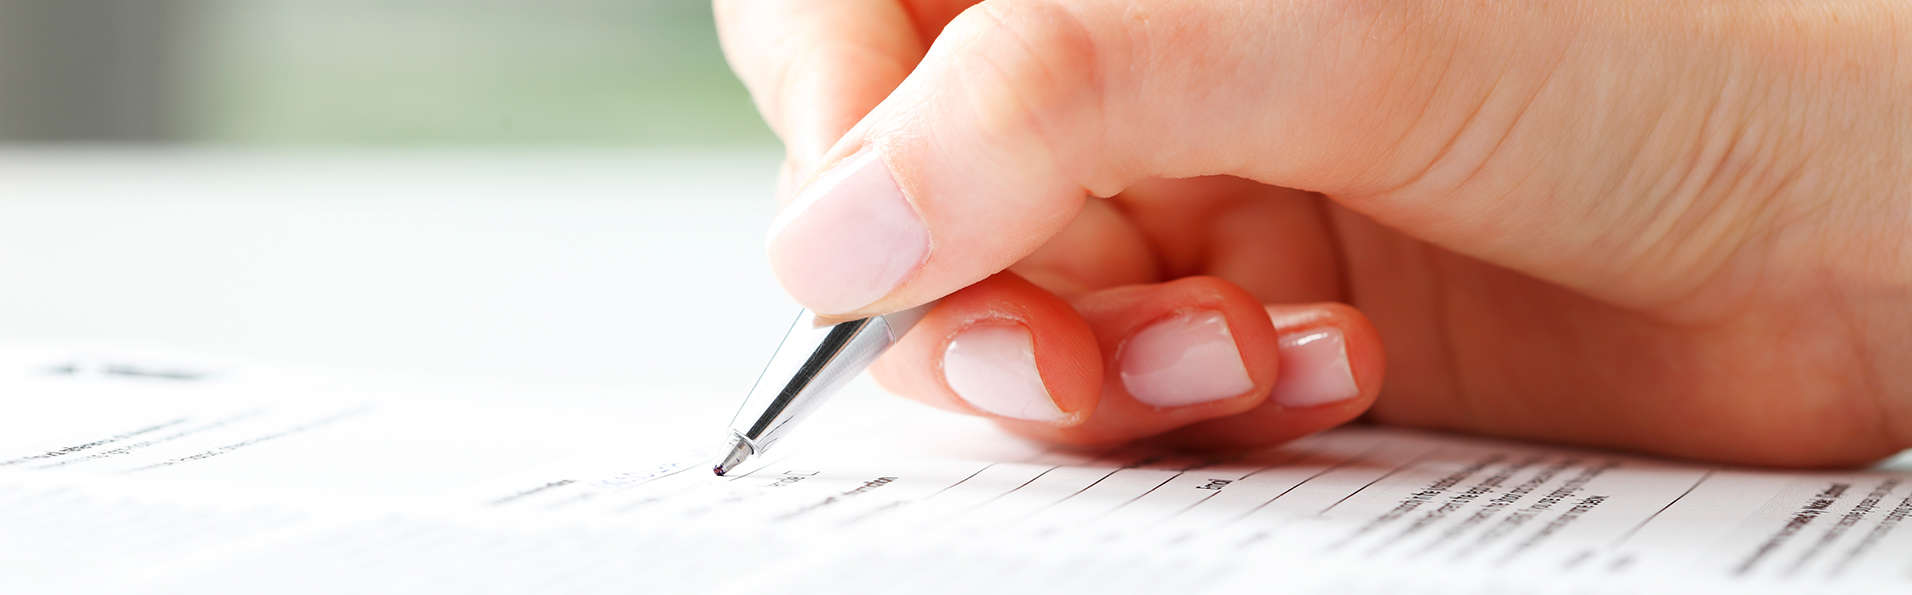 Writing Completing Form